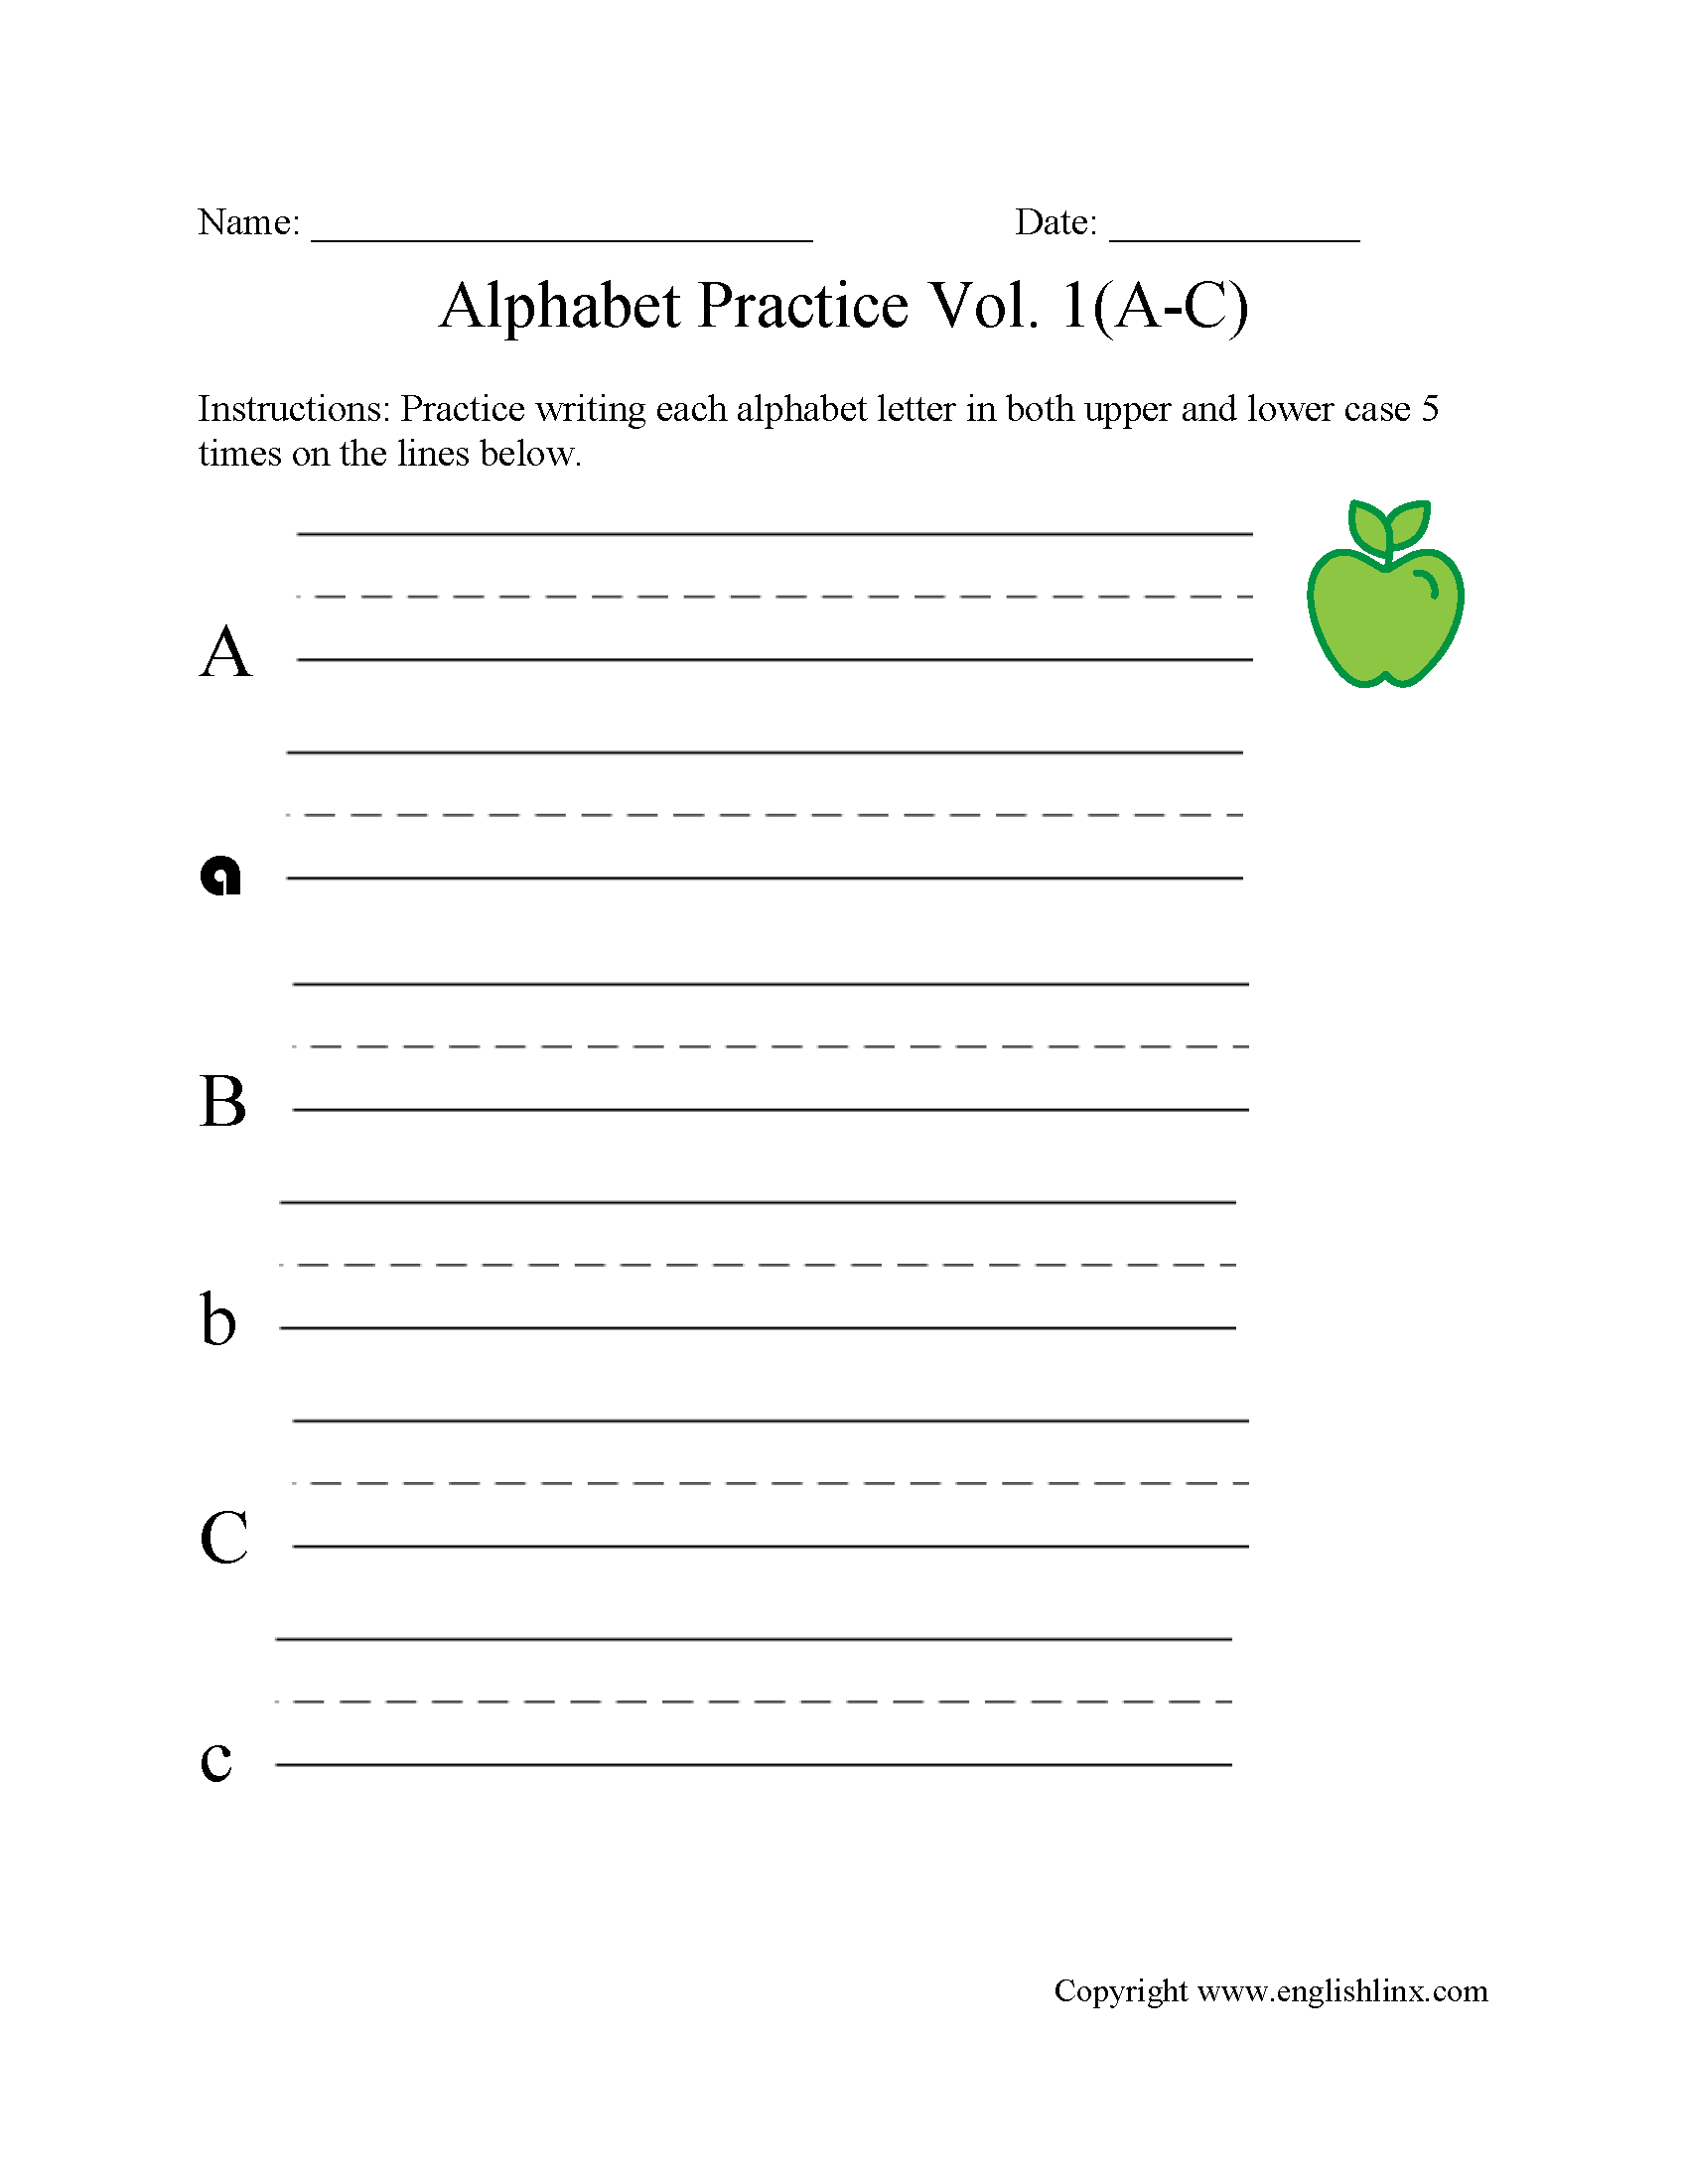 worksheet Alphabet Worksheet alphabet worksheets writing the worksheet